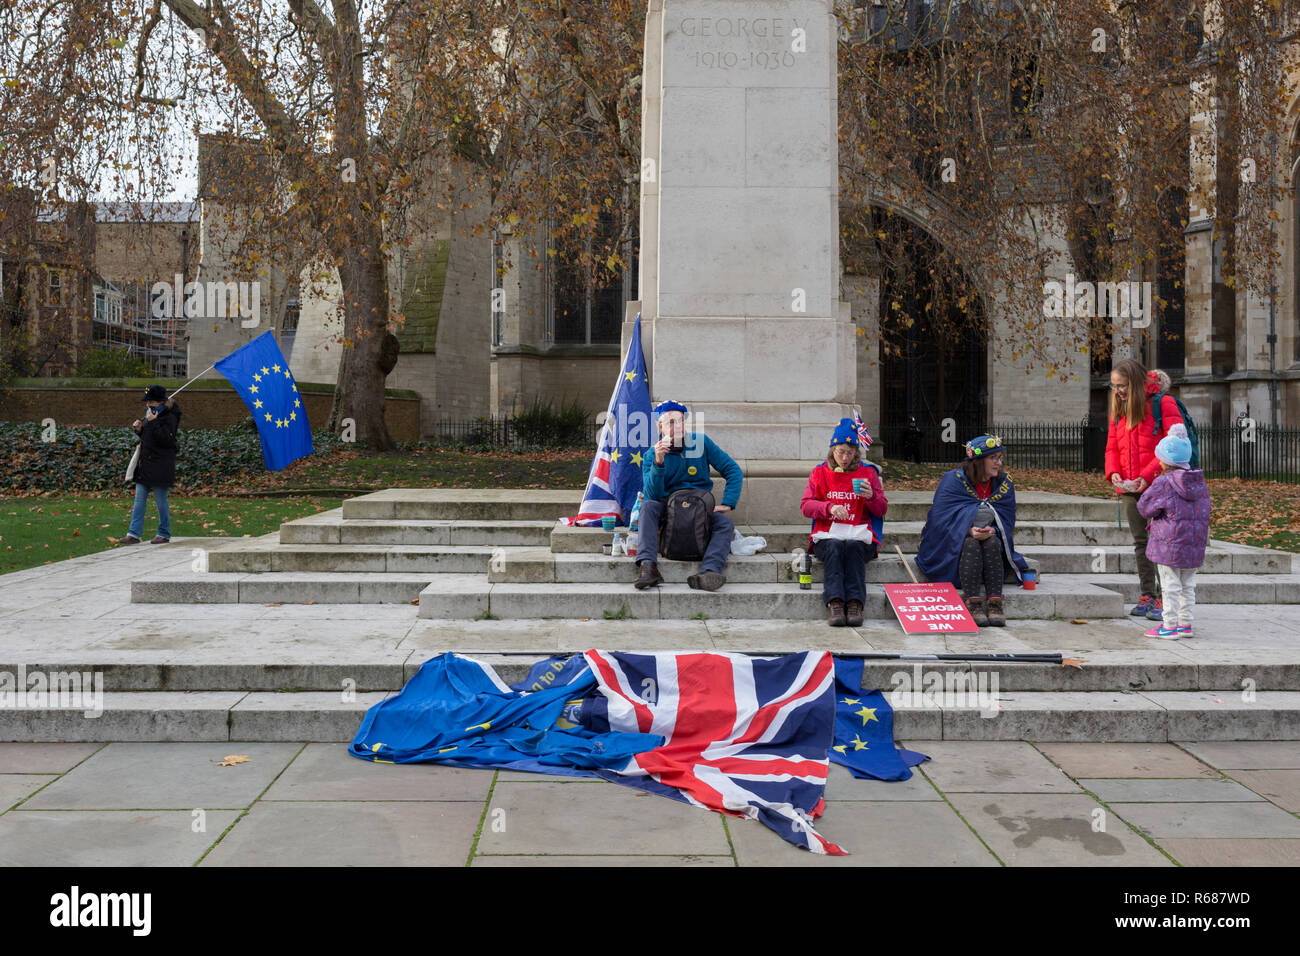 London UK, 4th December 2018: As Prime Minister Theresa May prepares to sell her Brexit deal ahead of five days of debate and eventual vote in parliament, both pro-EU Remainers and Brexiteers argue outside the House of Commons. This week will be a vital step for May's Premiership and the UK's Brexit status.  Photo by Richard Baker / Alamy Live News. - Stock Image